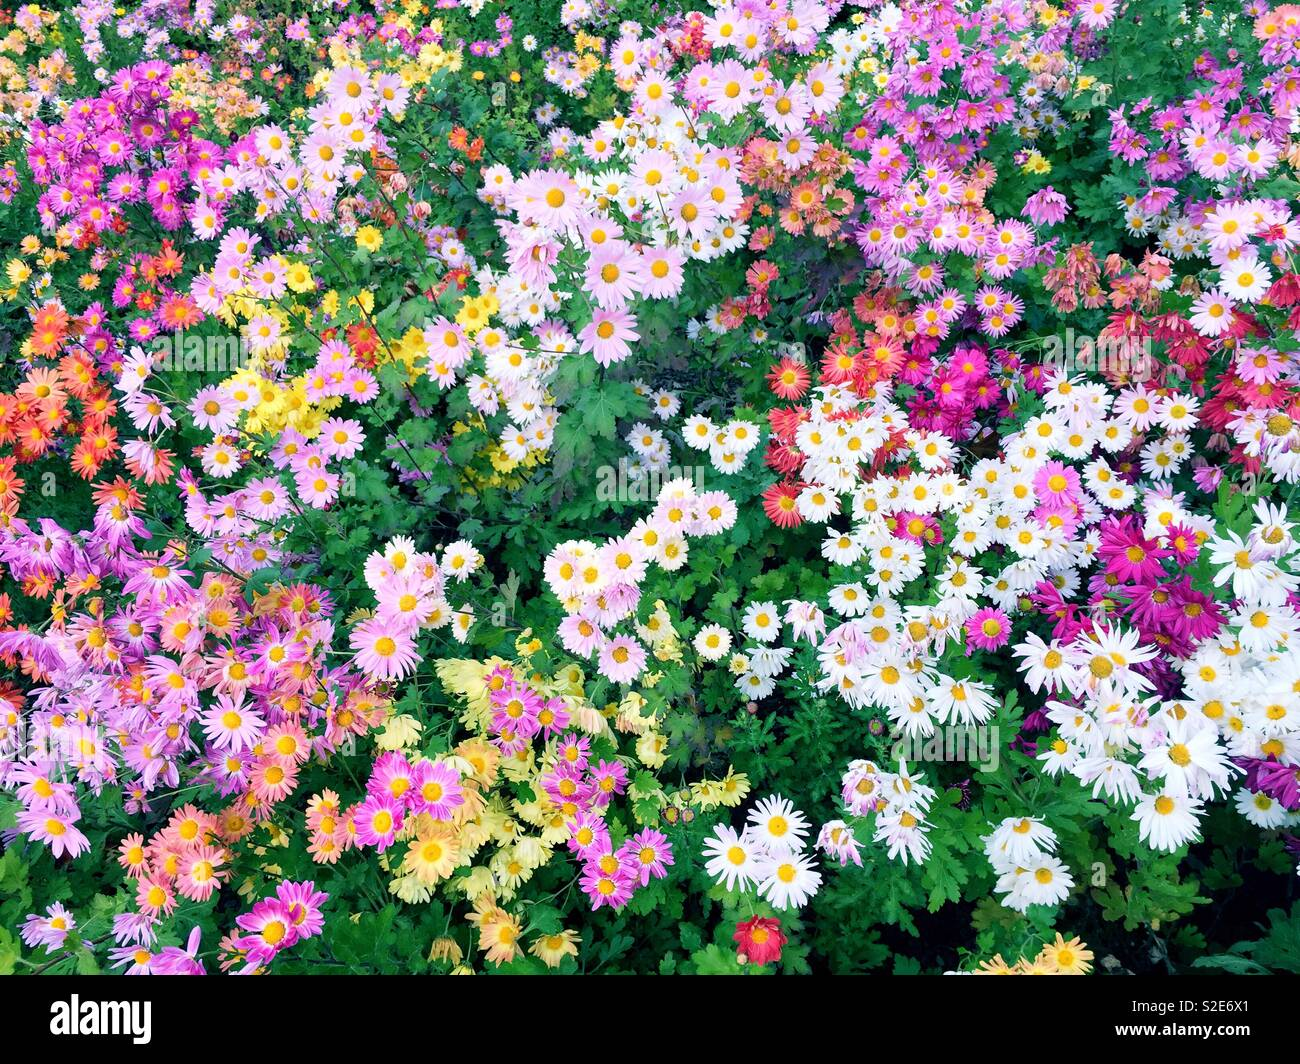 A field of Korean mums in the conservatory garden, Central Park, NYC, USA - Stock Image